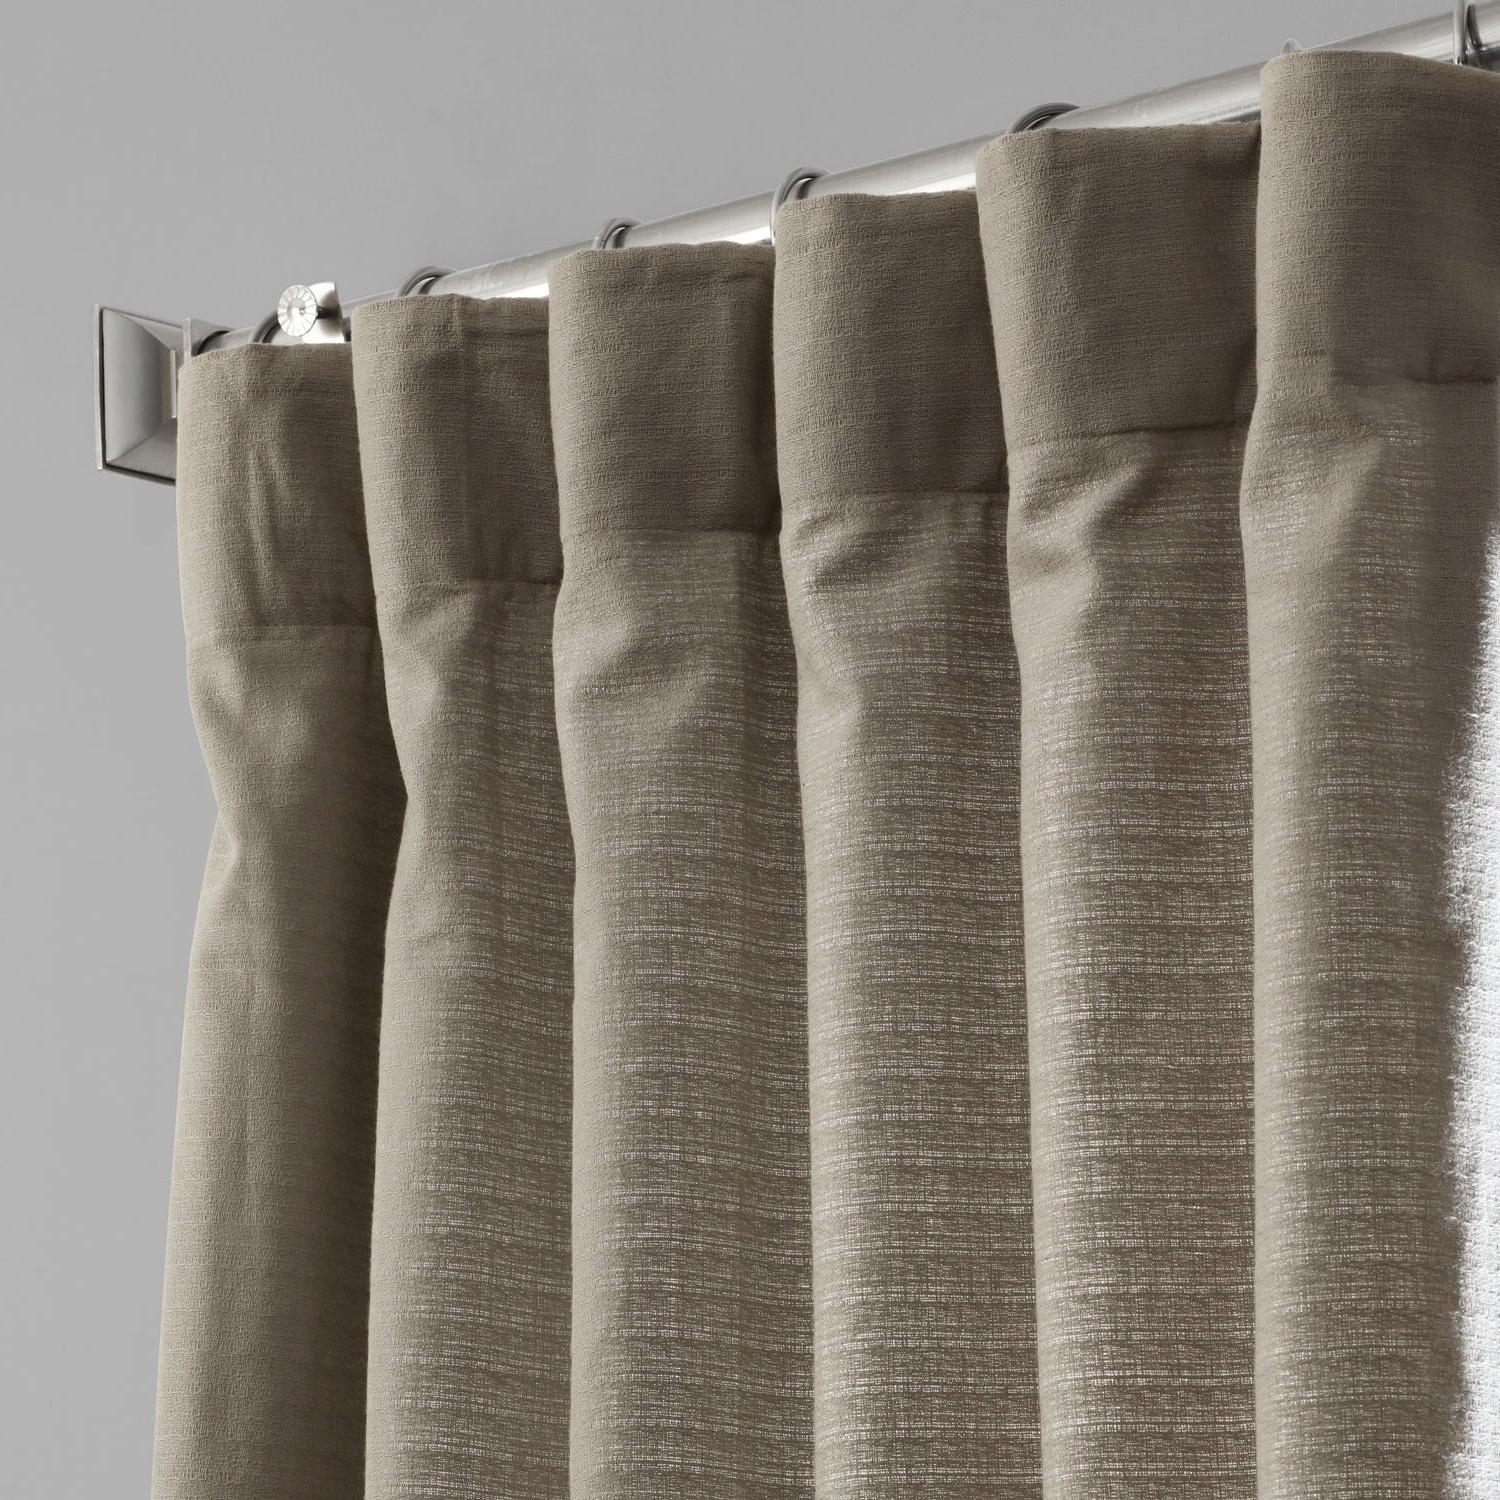 Bark Weave Solid Cotton Curtains In Current Shop Exclusive Fabrics Bark Weave Solid Cotton Curtain – On (View 12 of 20)